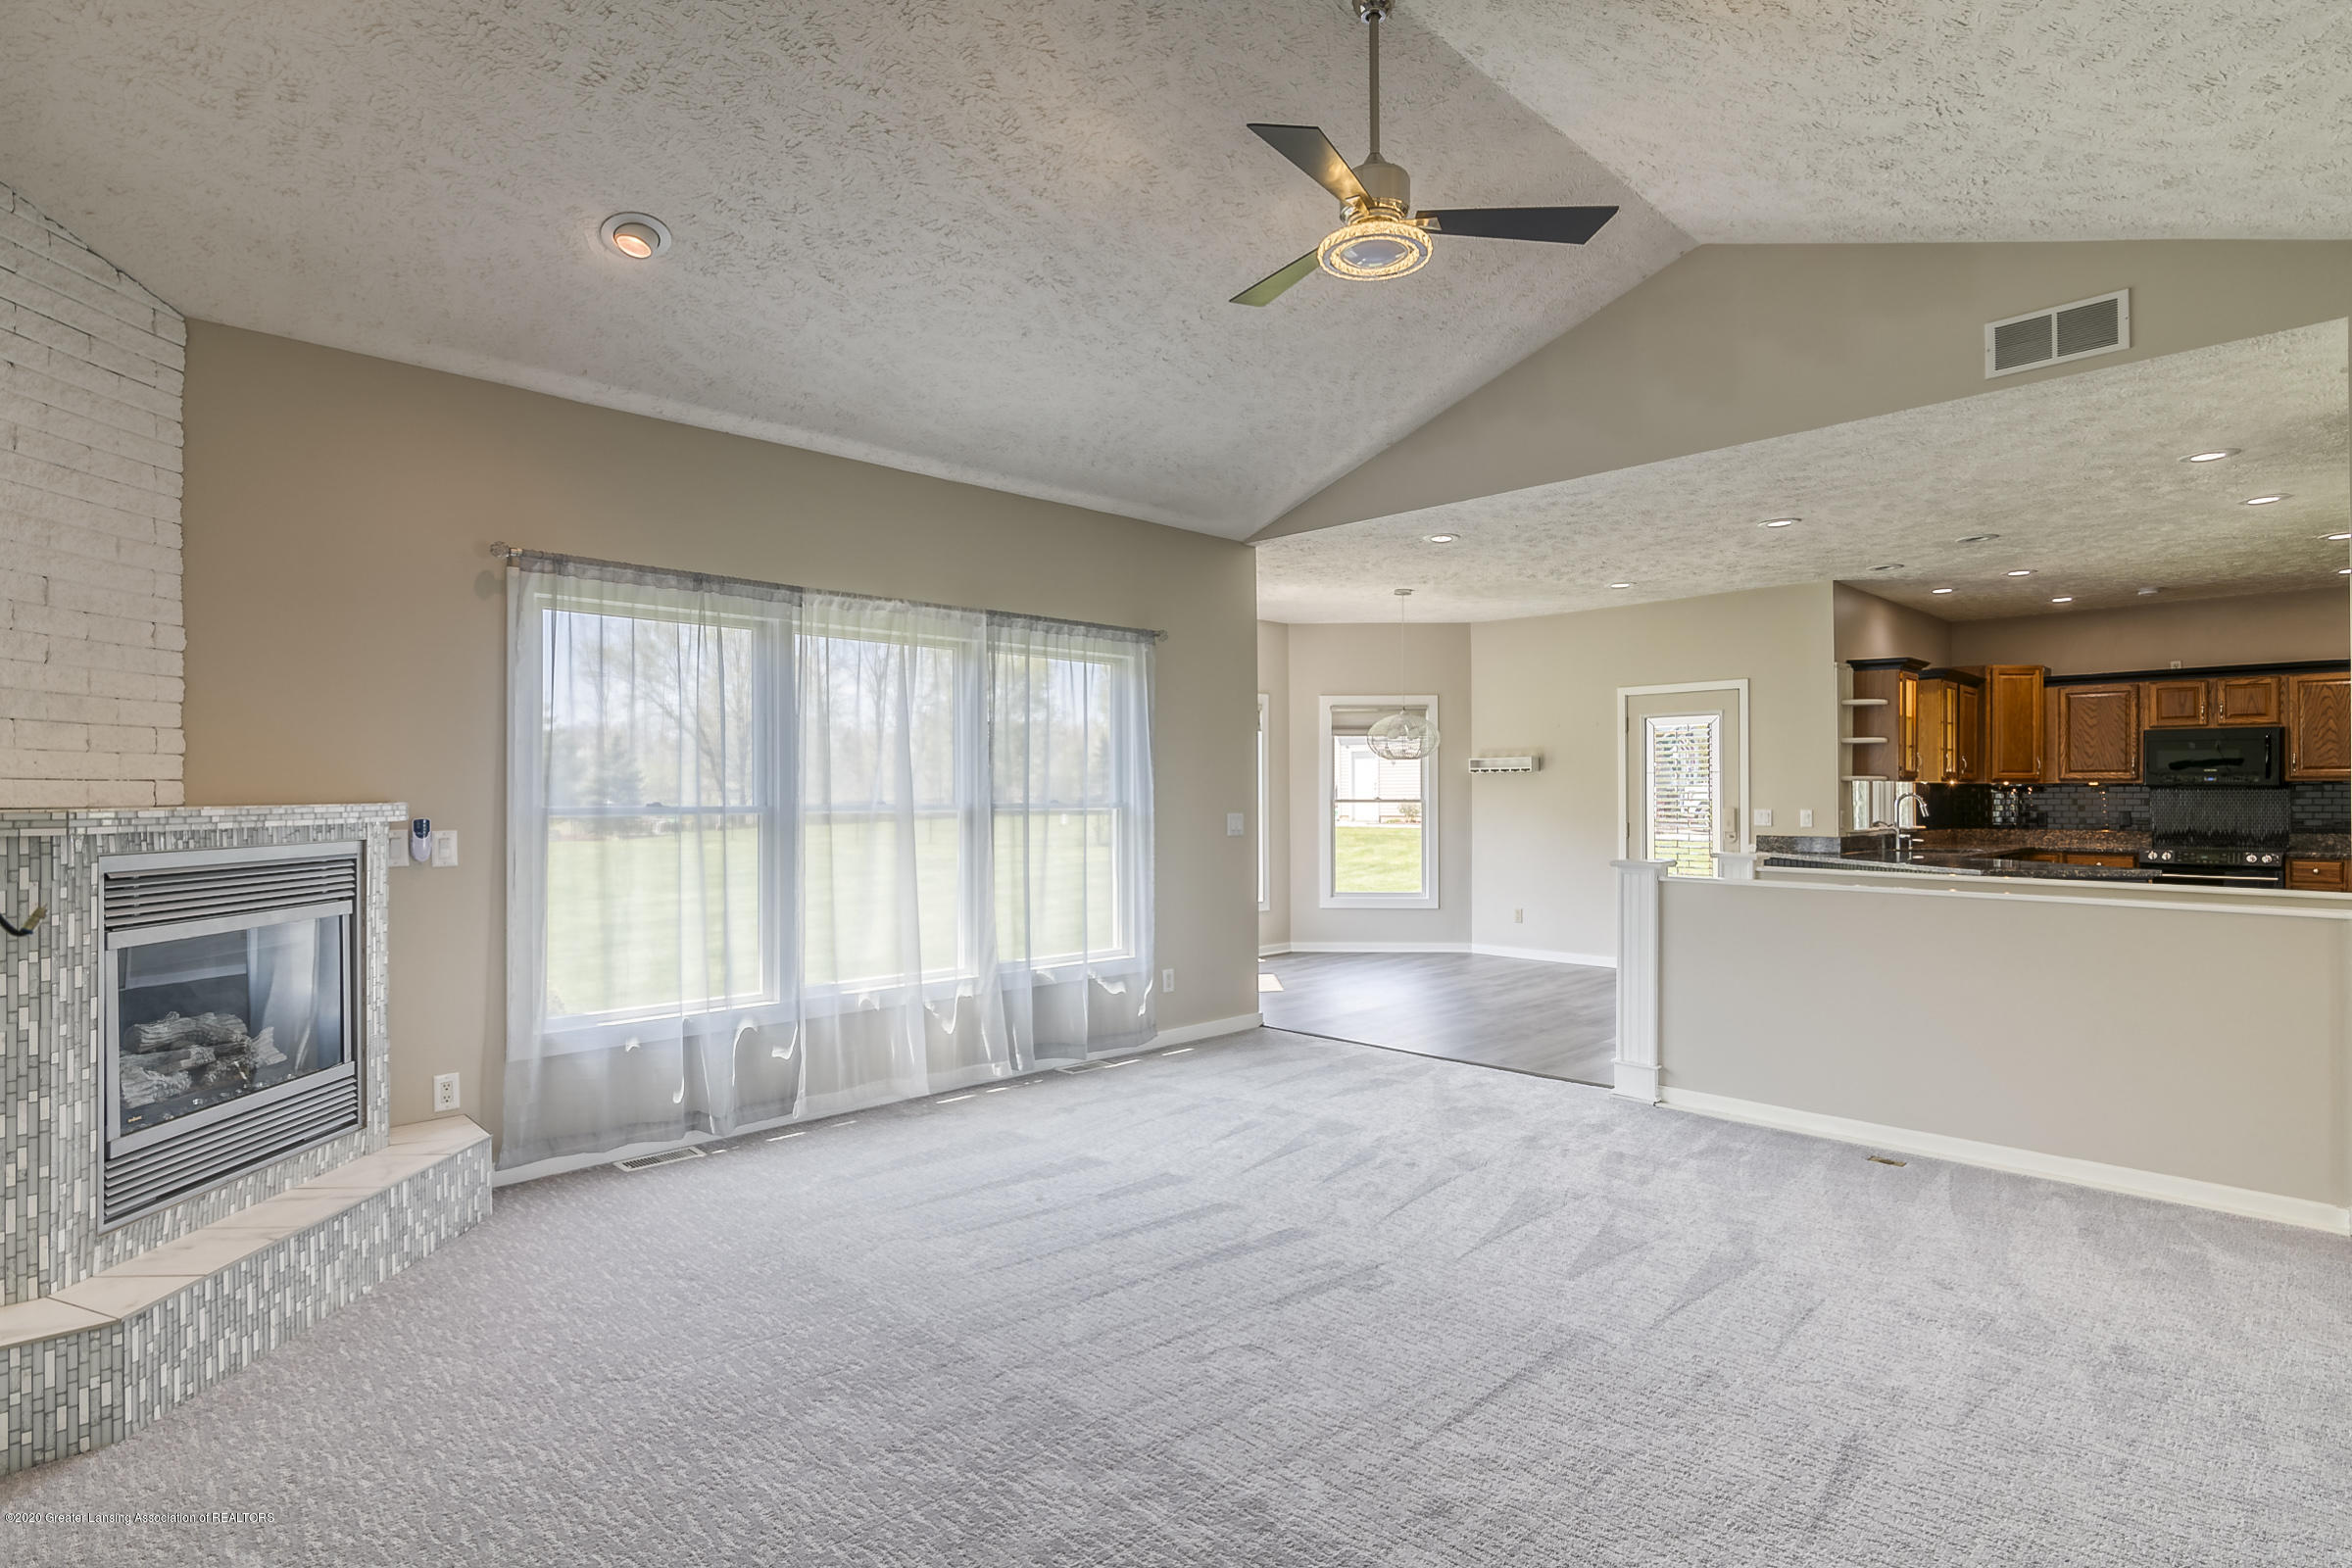 6901 Thornhill Dr - LIVING ROOM - 5